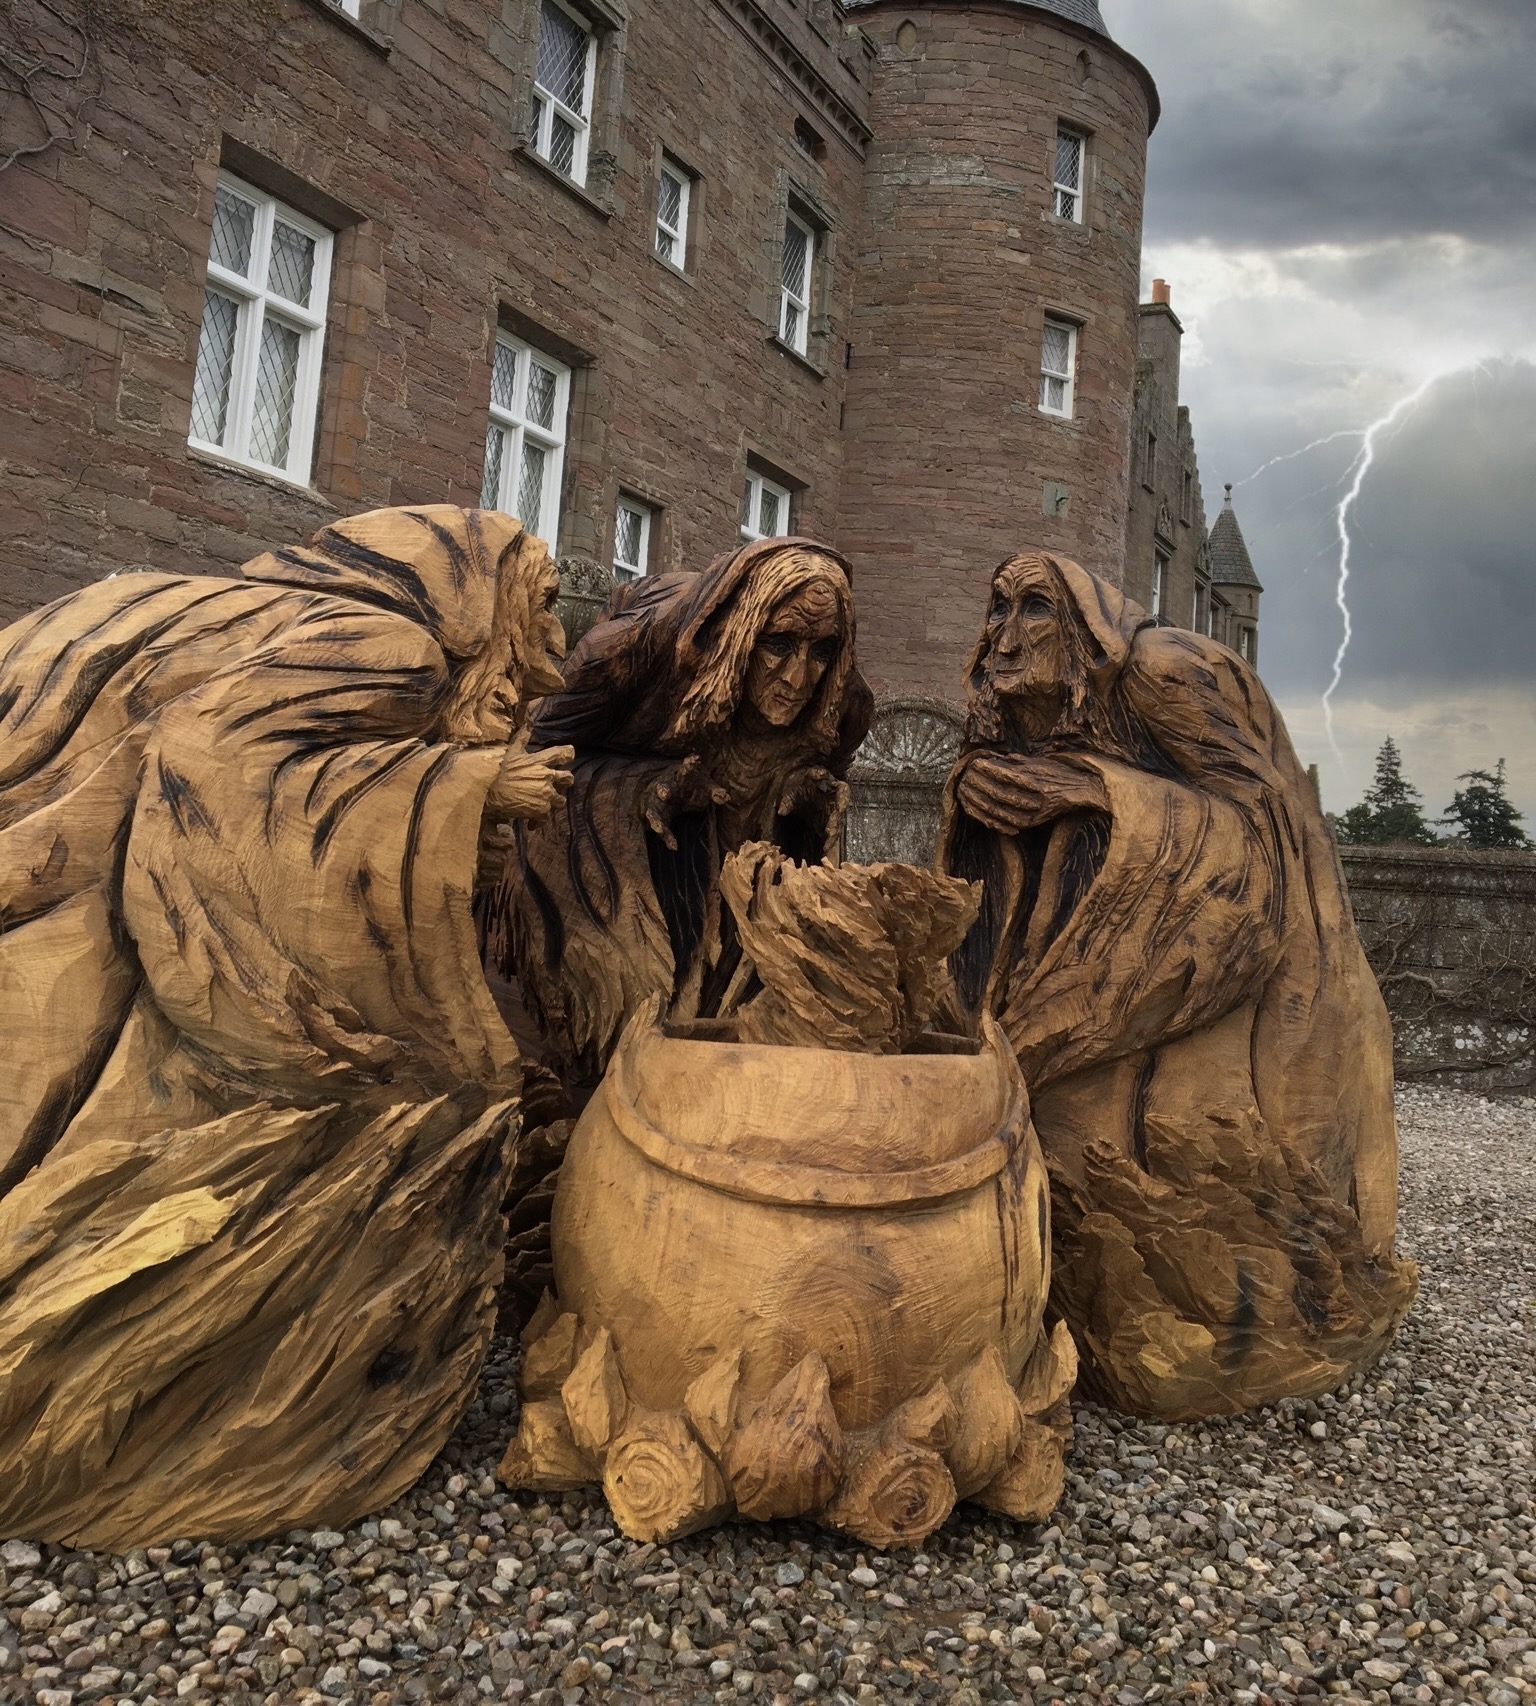 Three Witches from Macbeth, carved by Neith Chainsaw Carving Artists